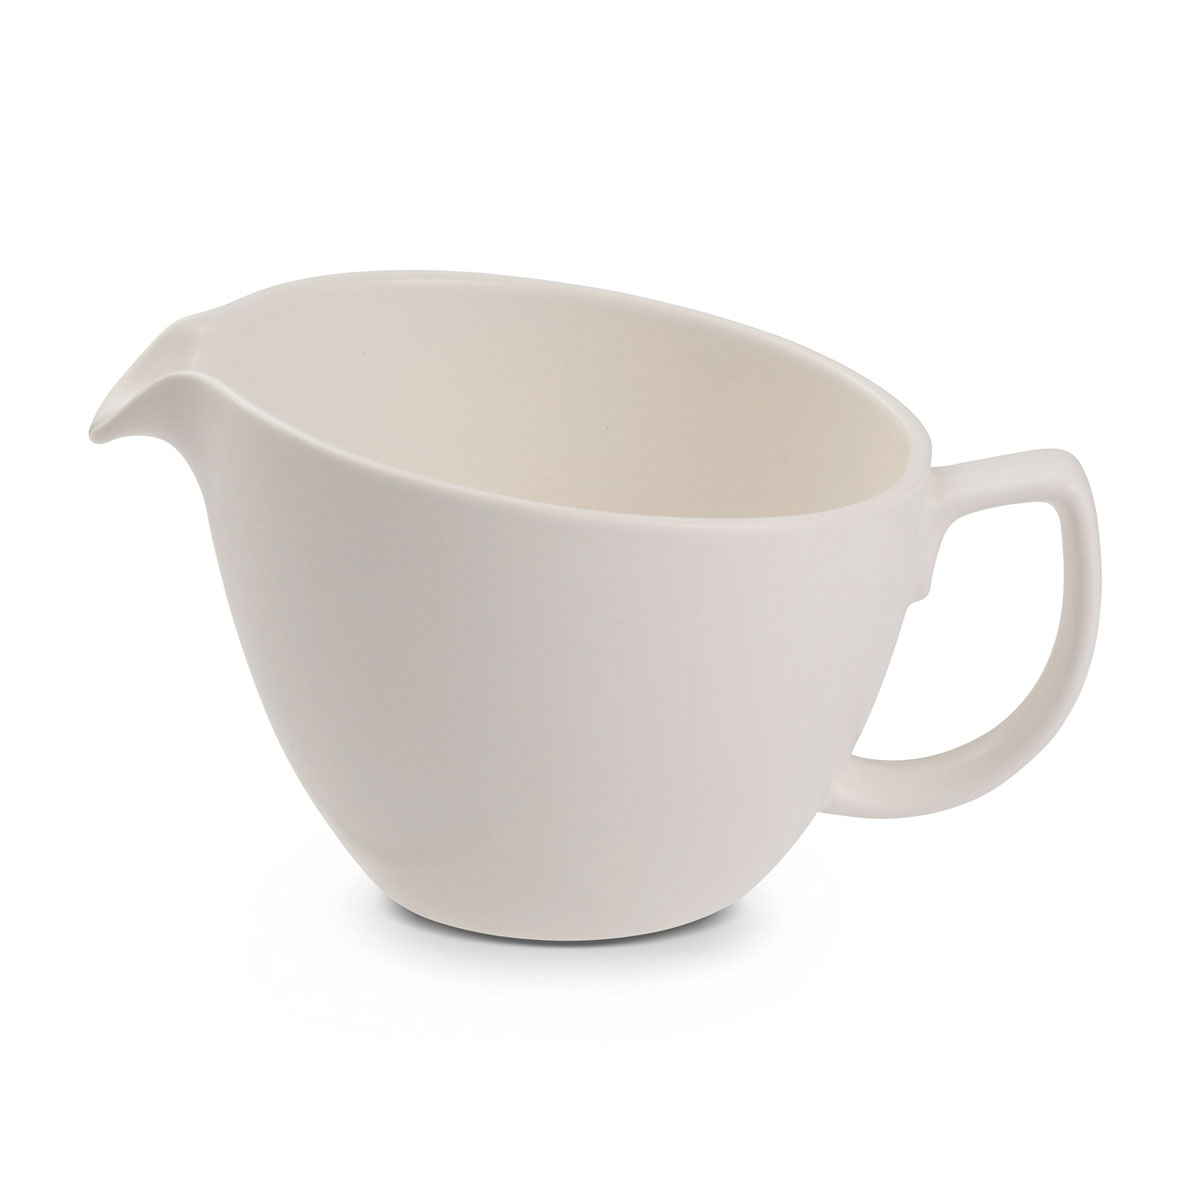 Nambe Orbit Cream Pitcher Starry White